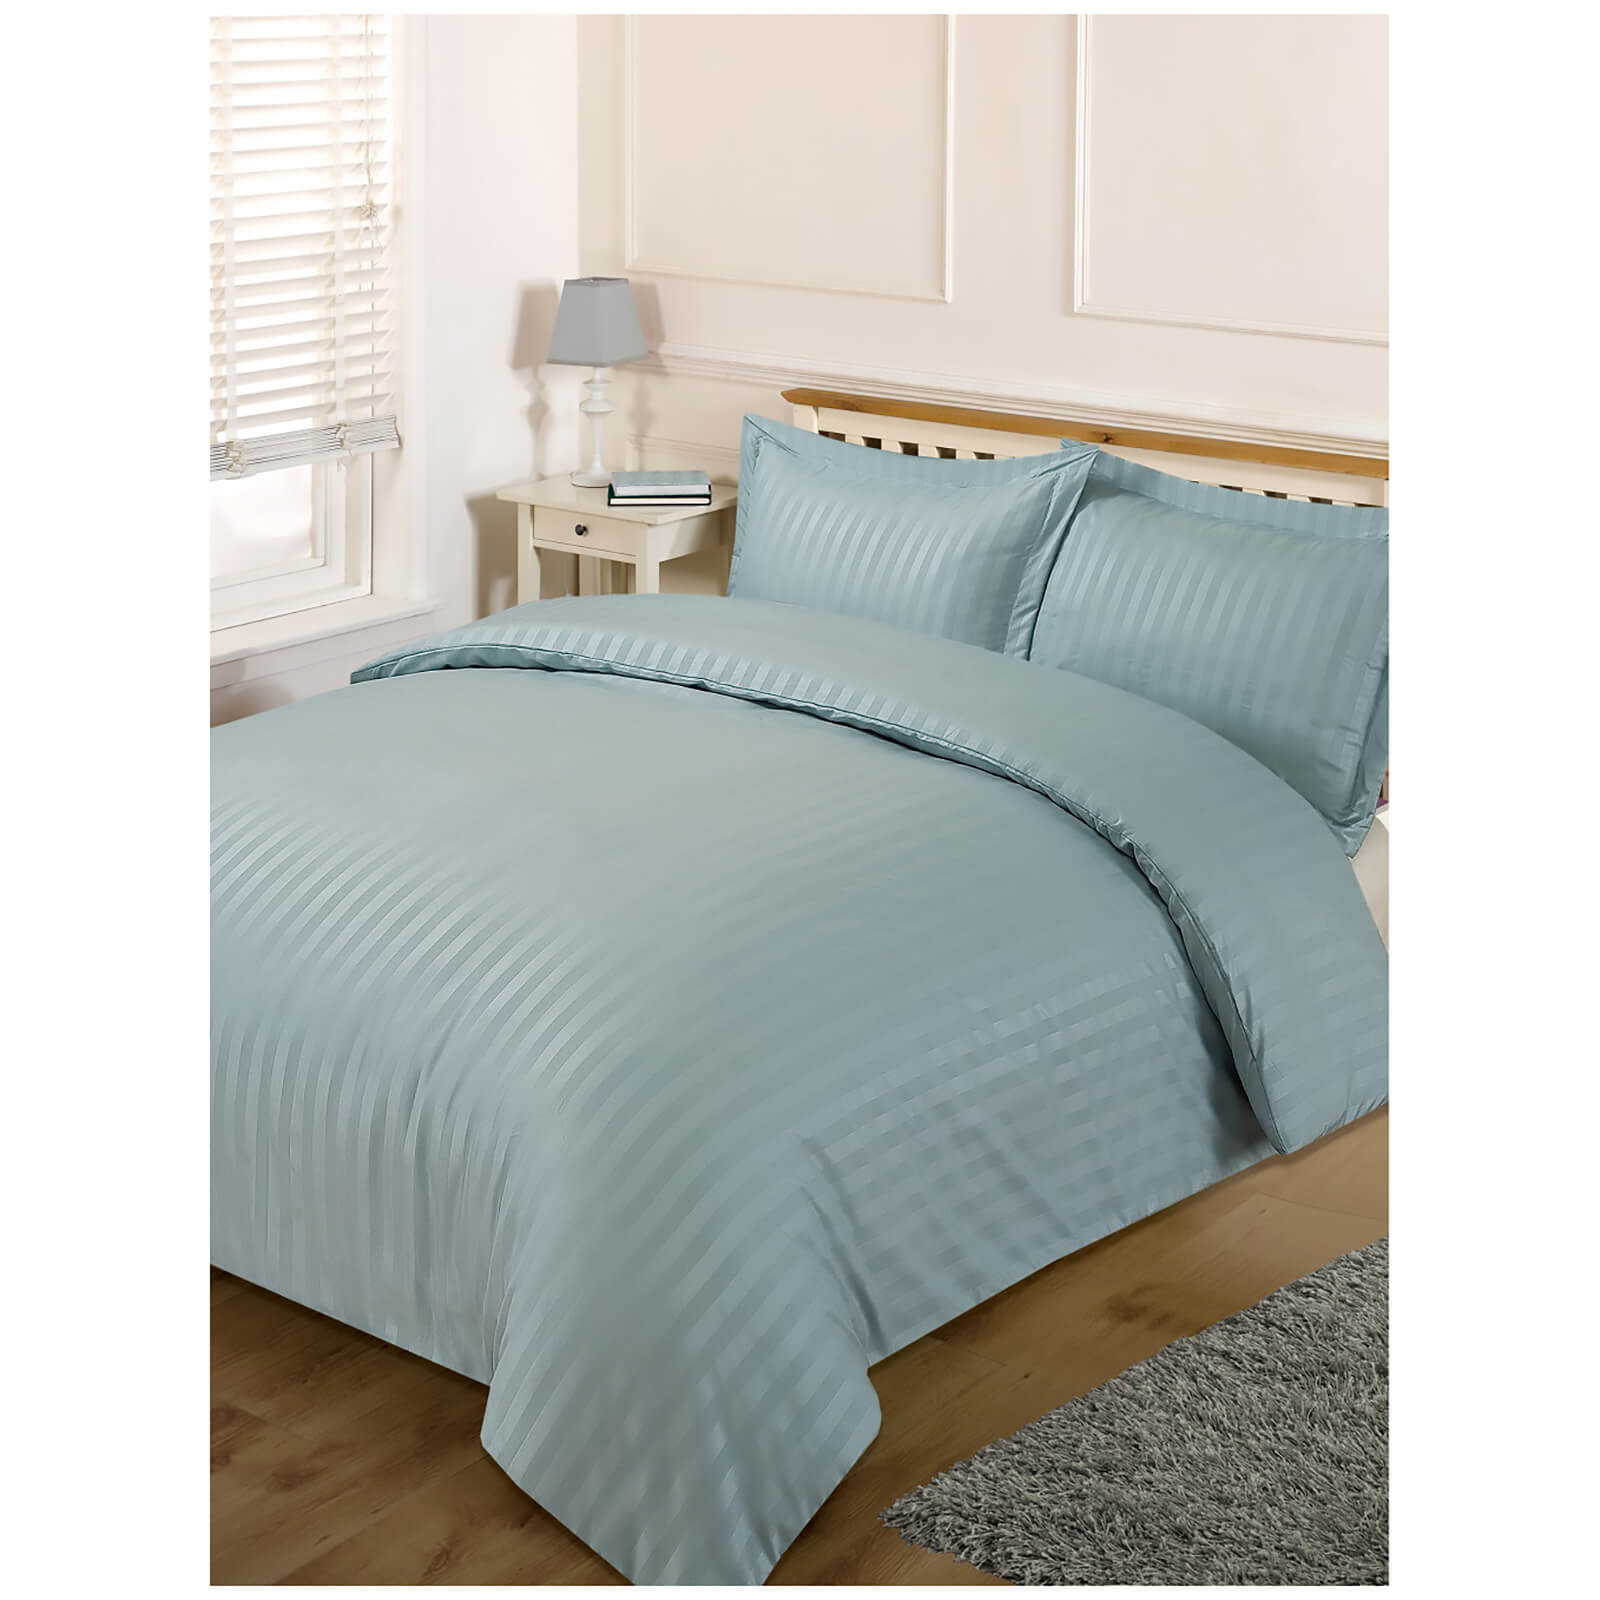 Brentfords Satin Stripe Duvet Set - Duck Egg